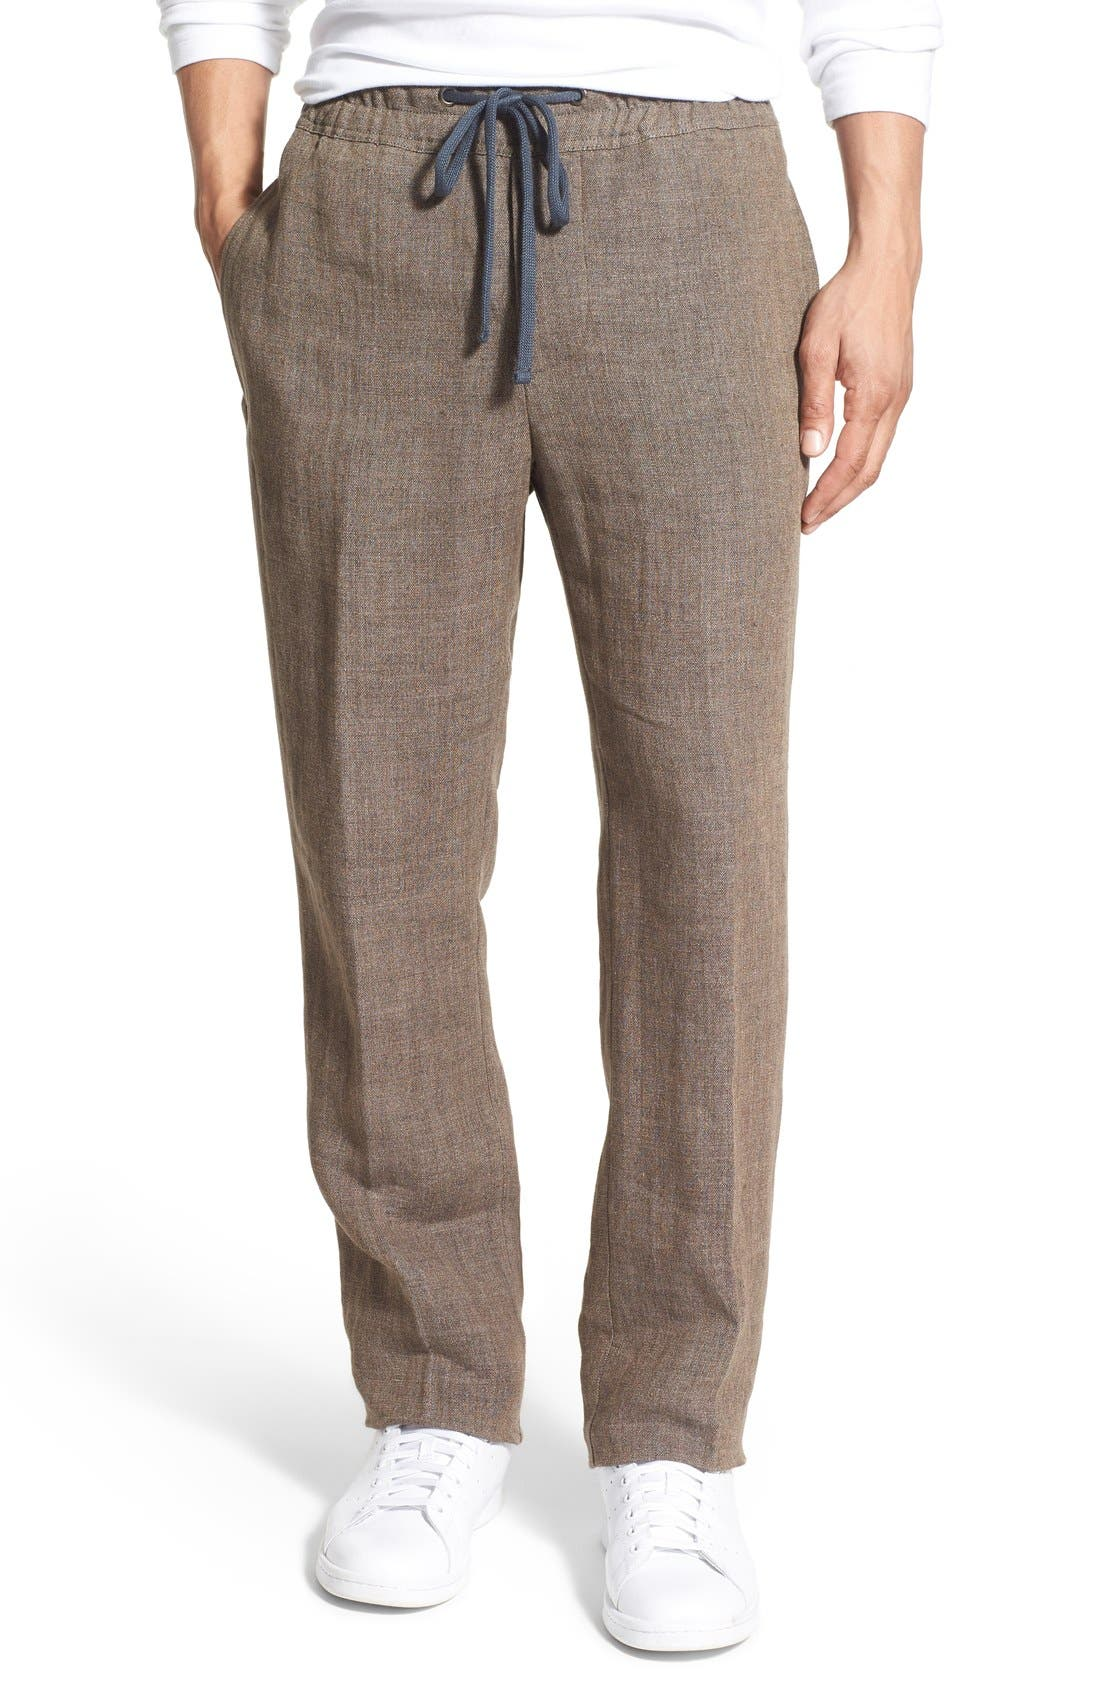 Alternate Image 1 Selected - James Perse 'Delave' Drawstring Linen Pants